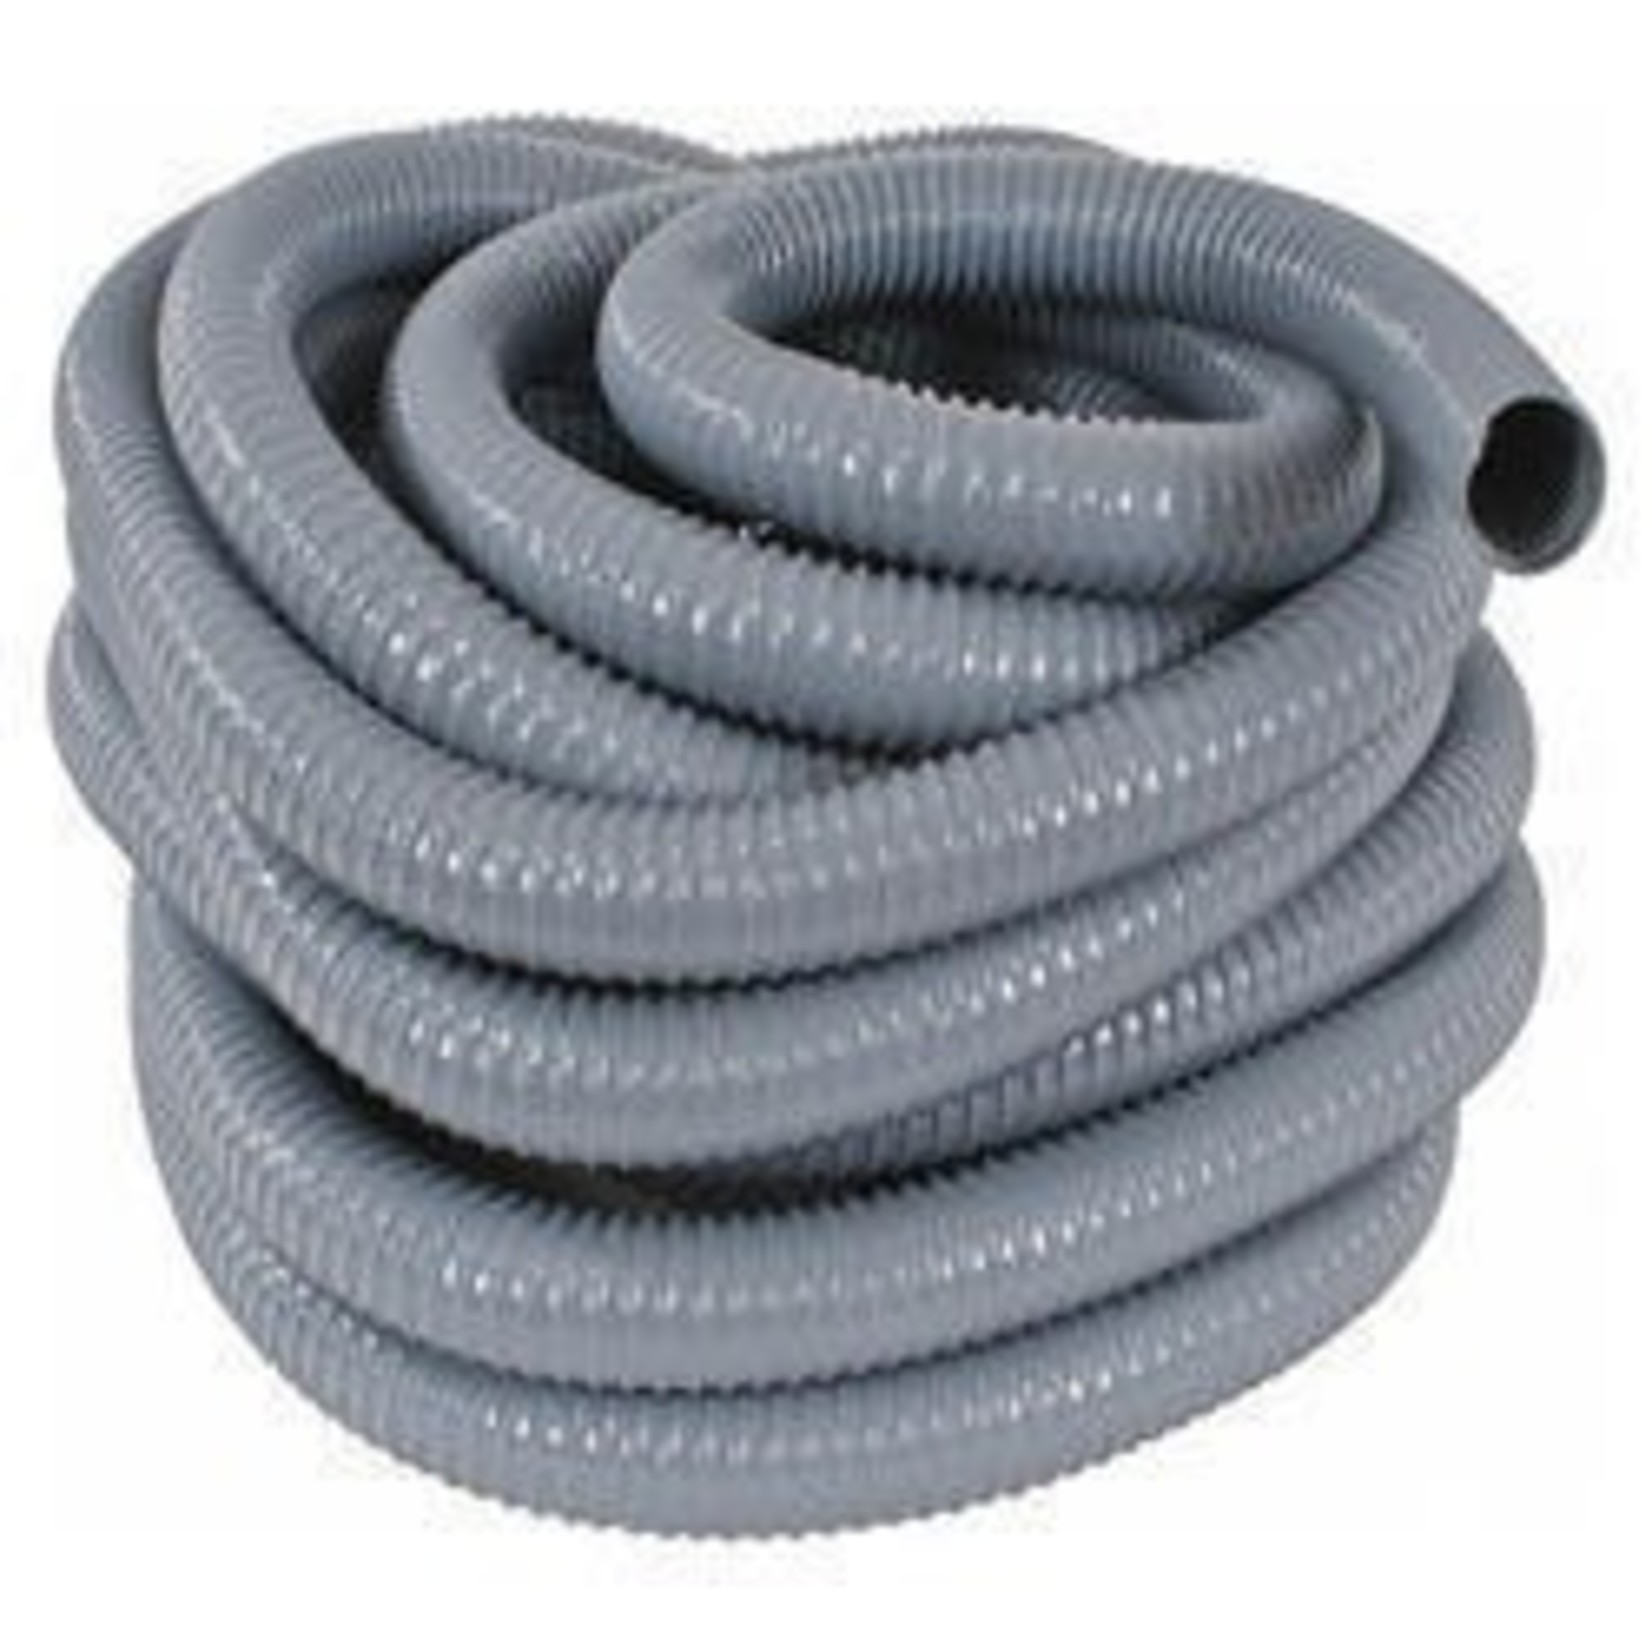 "Plastiflex Central Vacuum 2"" Flex Pipe - (1 foot)"